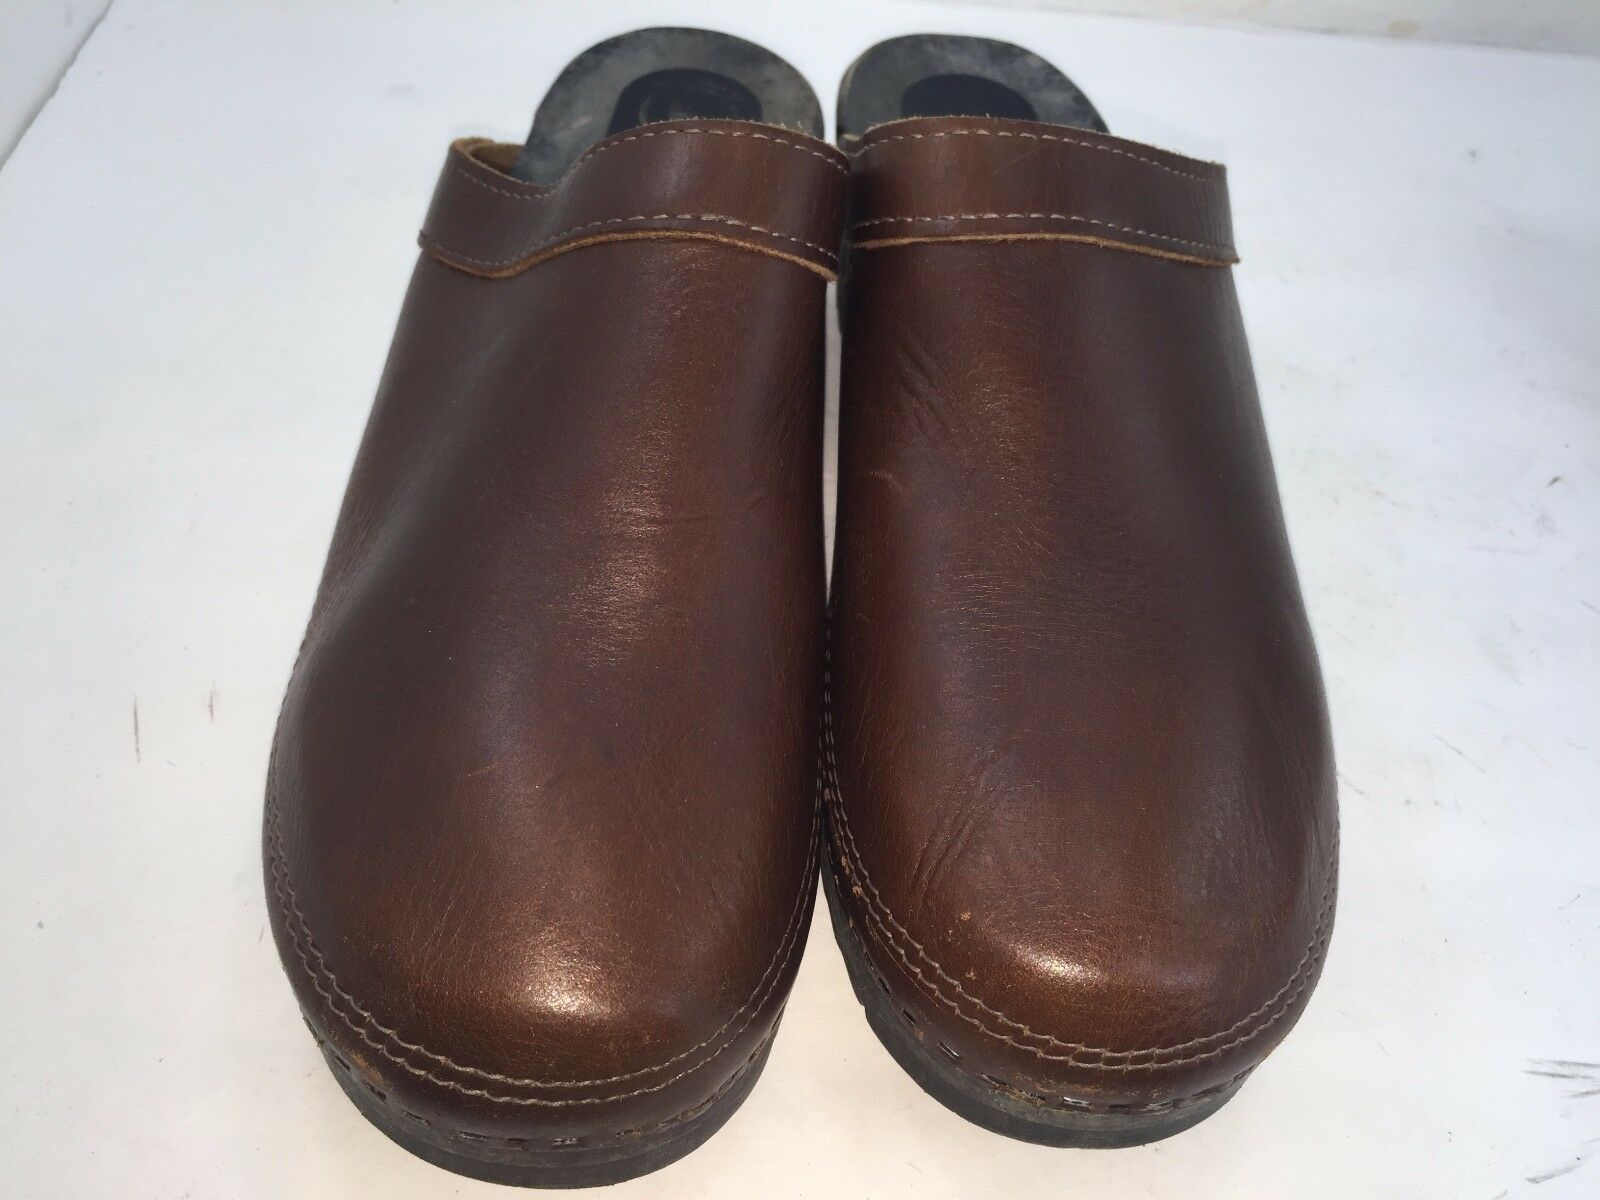 DANISH TRADITION SIZE GREAT 45 USA 11-11.5 IN GREAT SIZE CONDITION BROWNS 8d960f